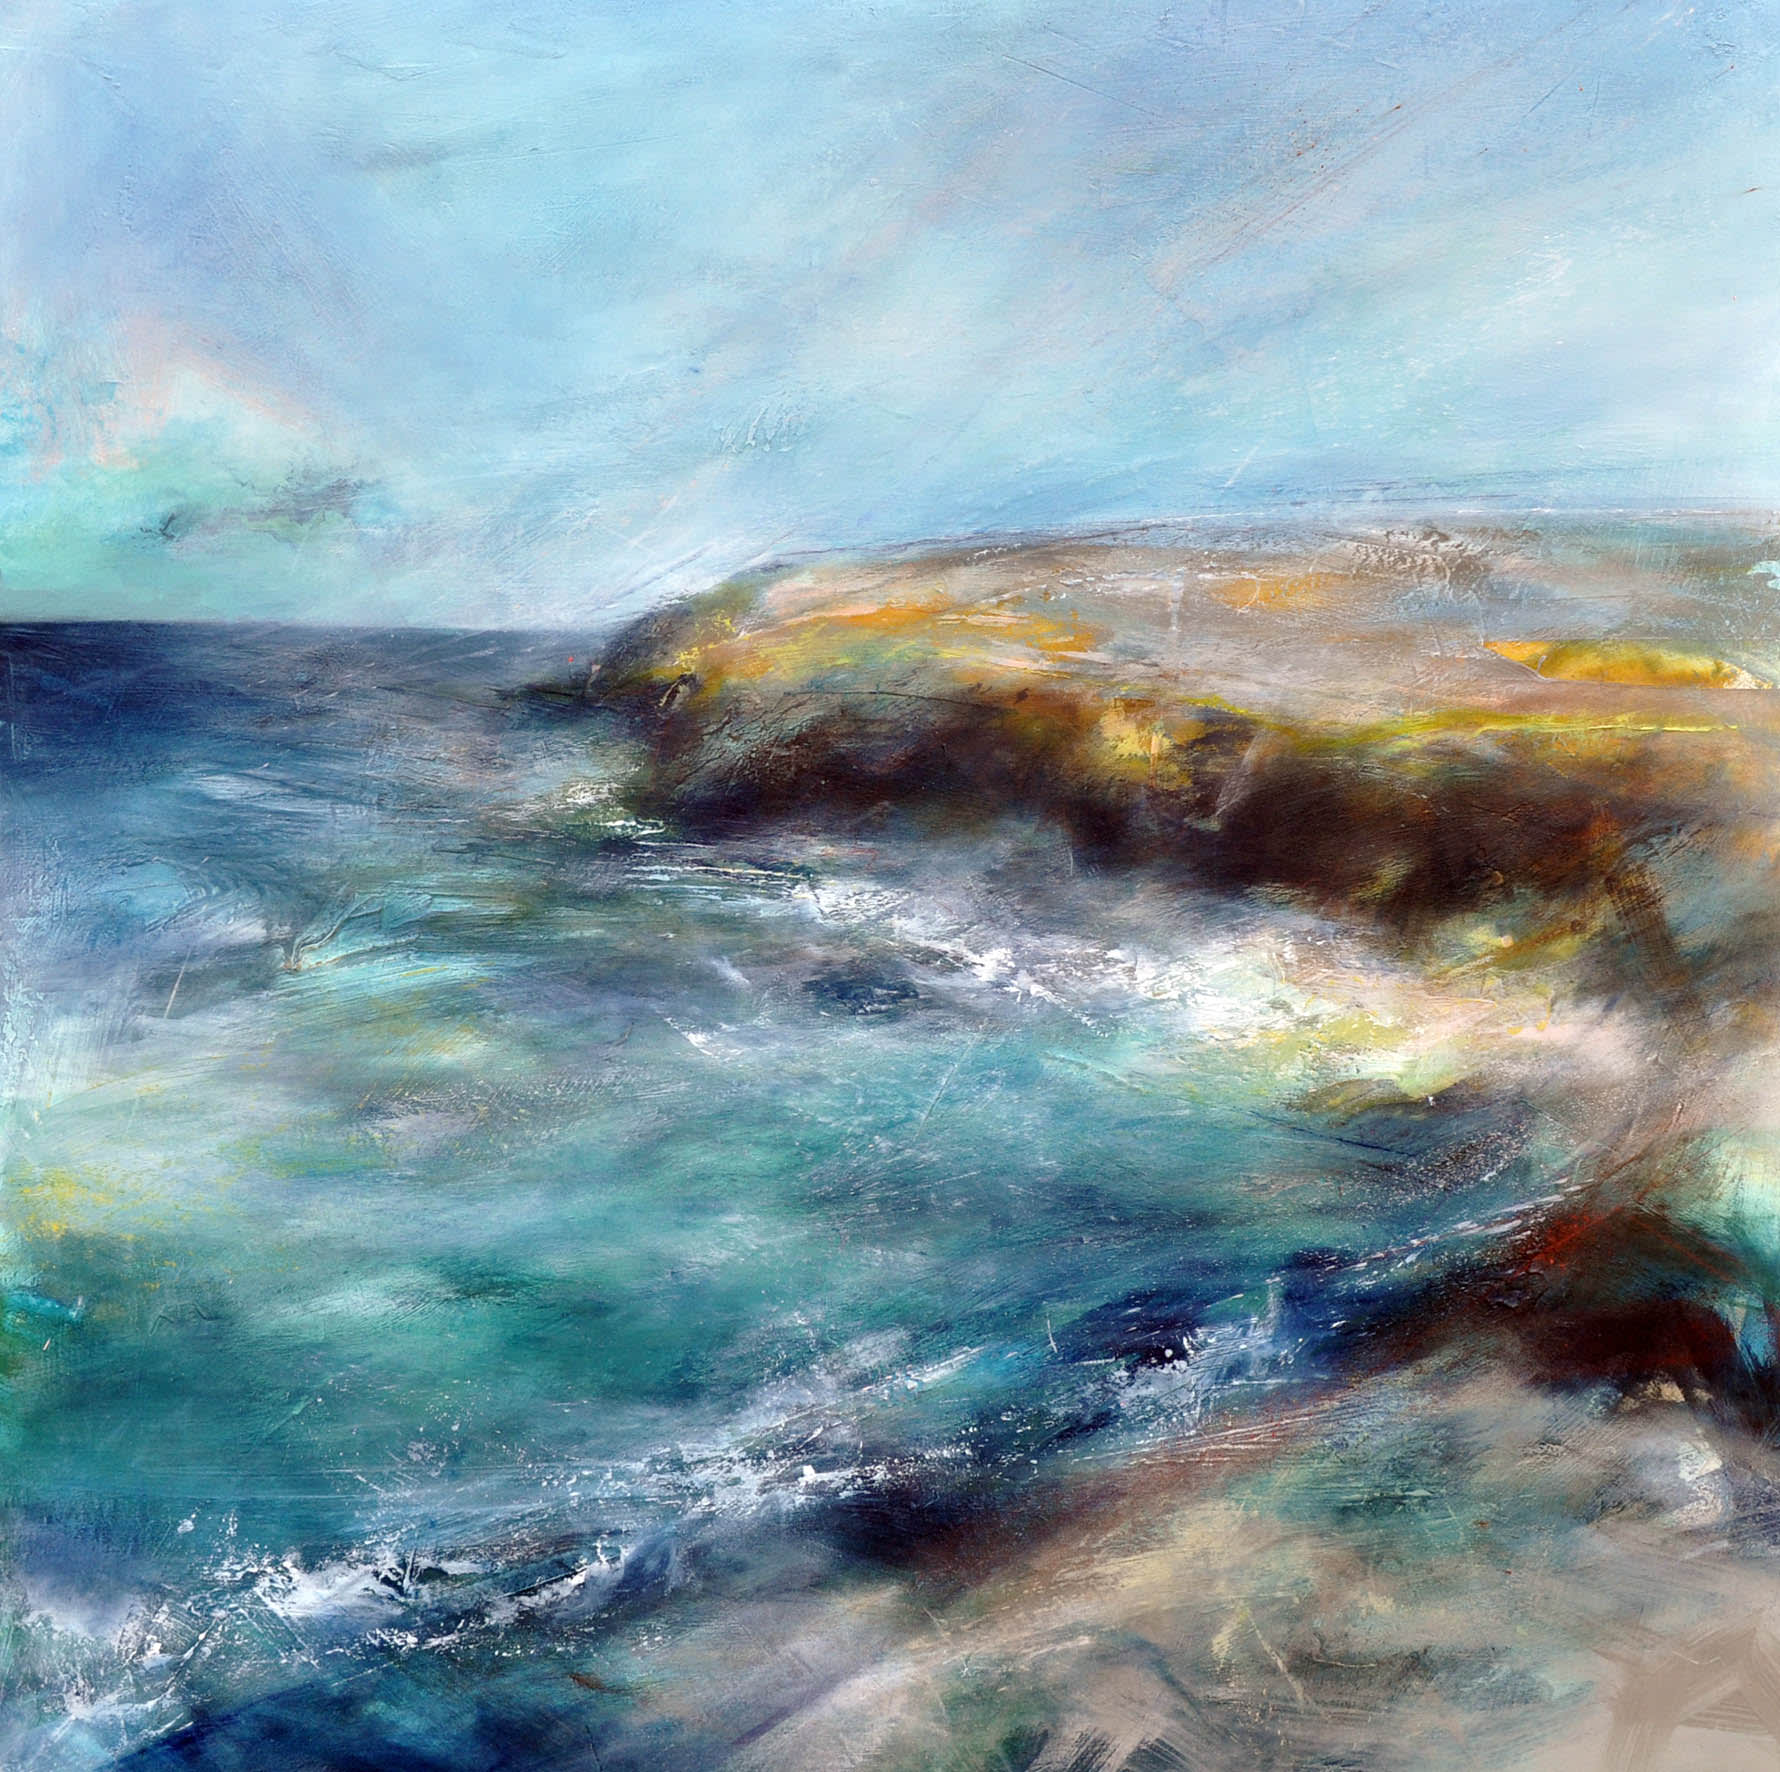 """<span class=""""link fancybox-details-link""""><a href=""""/artists/90-freya-horsley/works/7039-freya-horsley-plunging-2020/"""">View Detail Page</a></span><div class=""""artist""""><strong>Freya Horsley</strong></div> b. 1979 <div class=""""title""""><em>Plunging </em>, 2020 </div> <div class=""""medium"""">mixed media on canvas</div> <div class=""""dimensions"""">h. 100 x w. 100 cm </div><div class=""""price"""">£2,200.00</div>"""